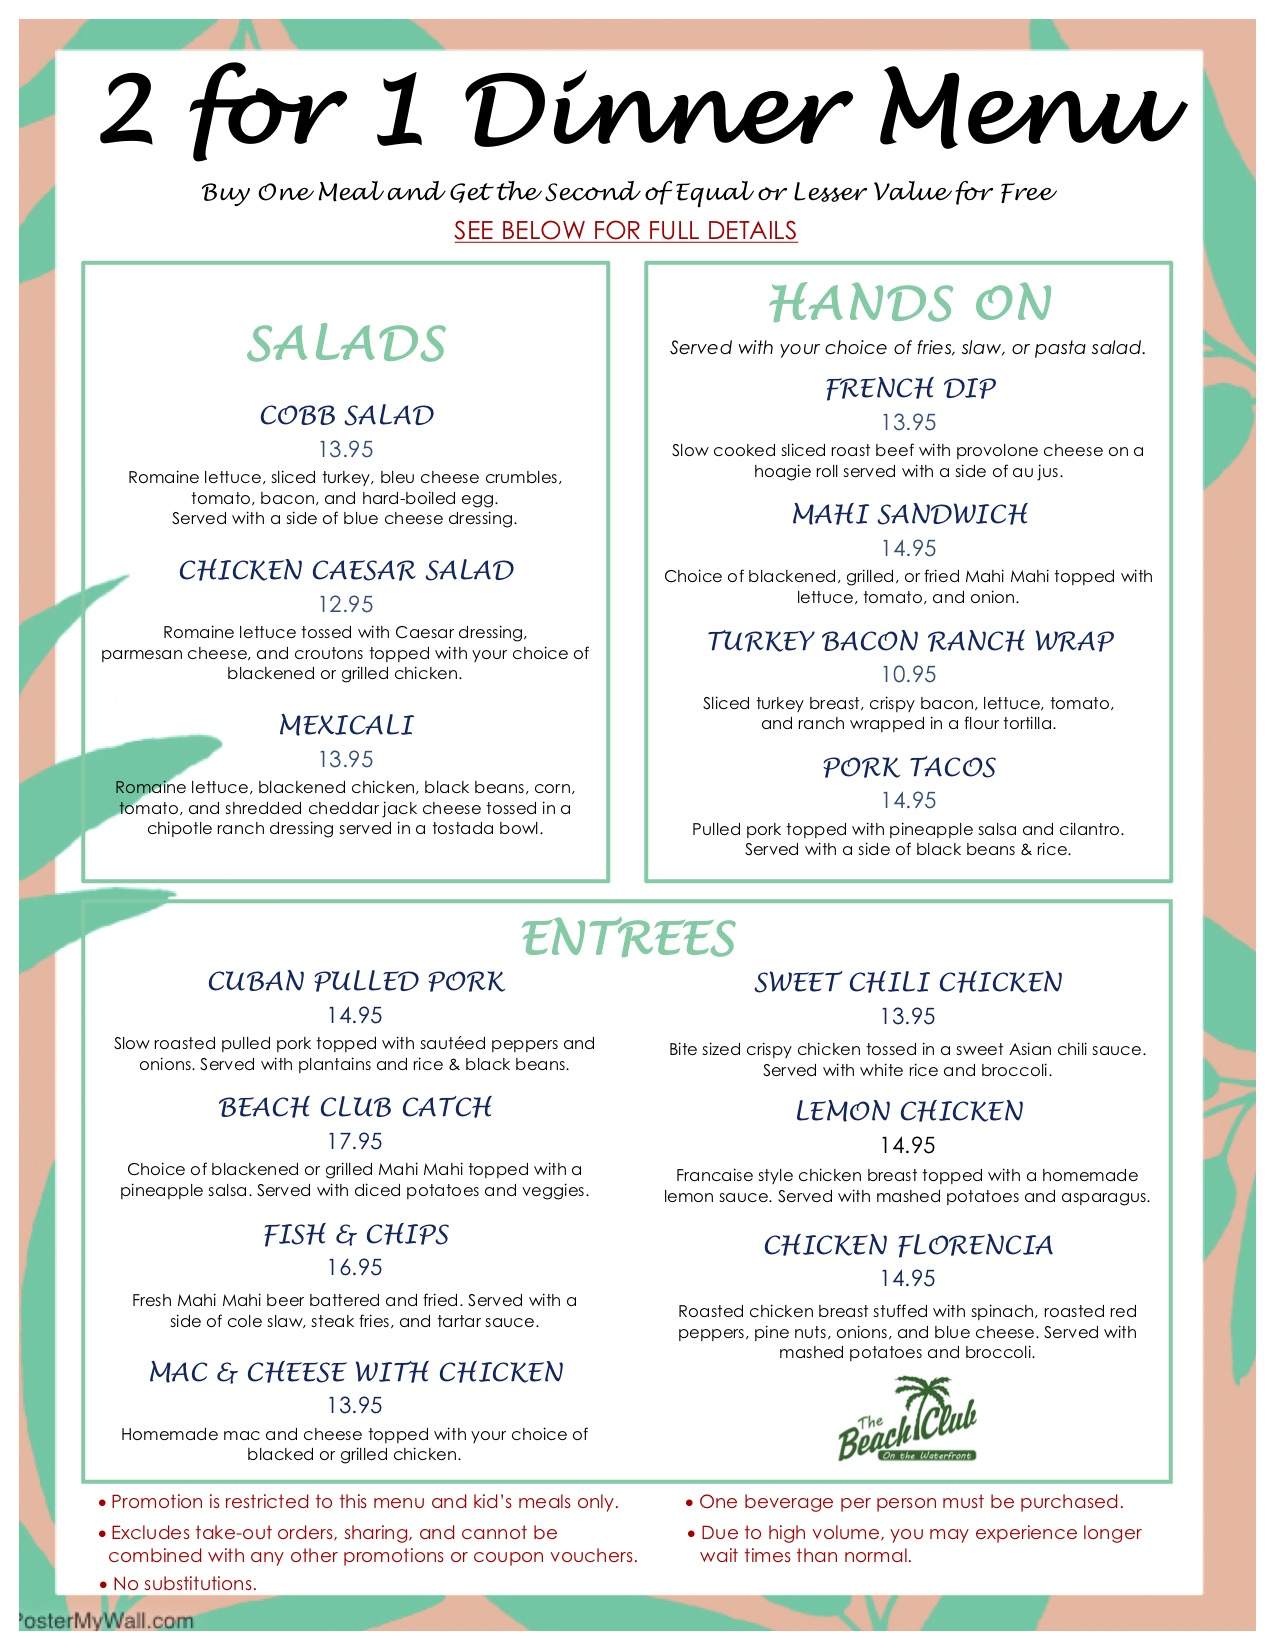 2 for 1 Menu March 2018